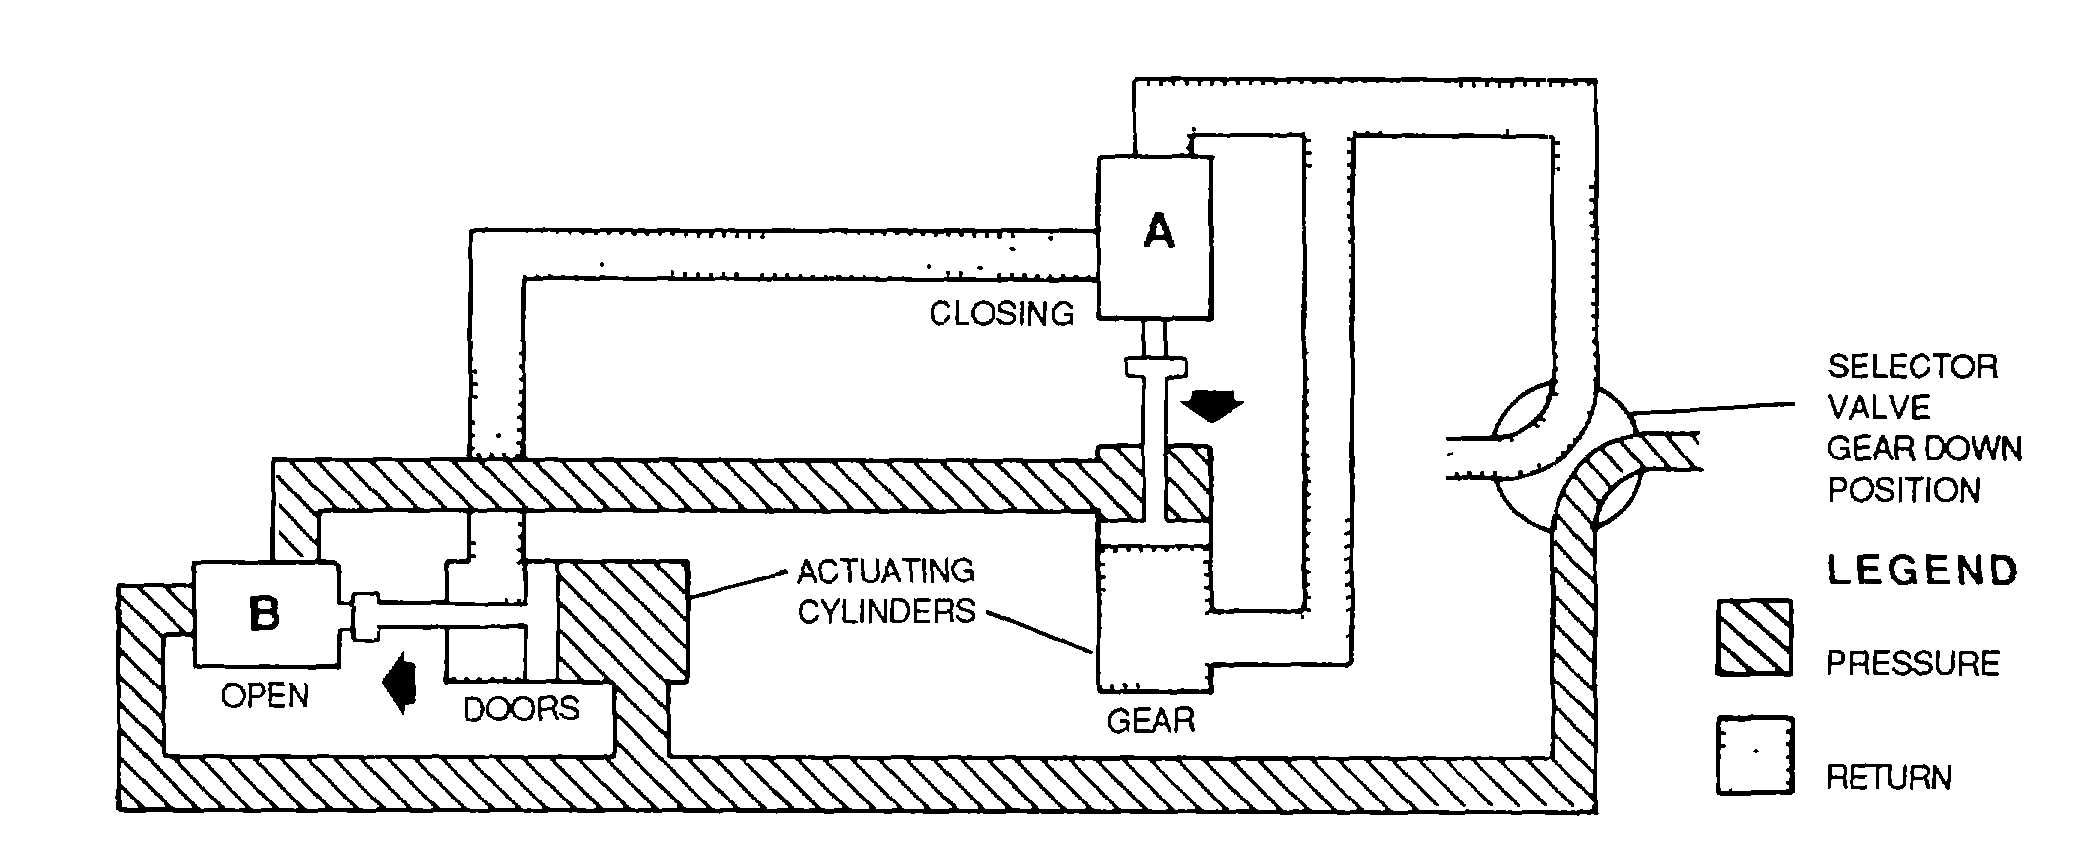 Figure 4 129 Landing Gear System Using Mechanically